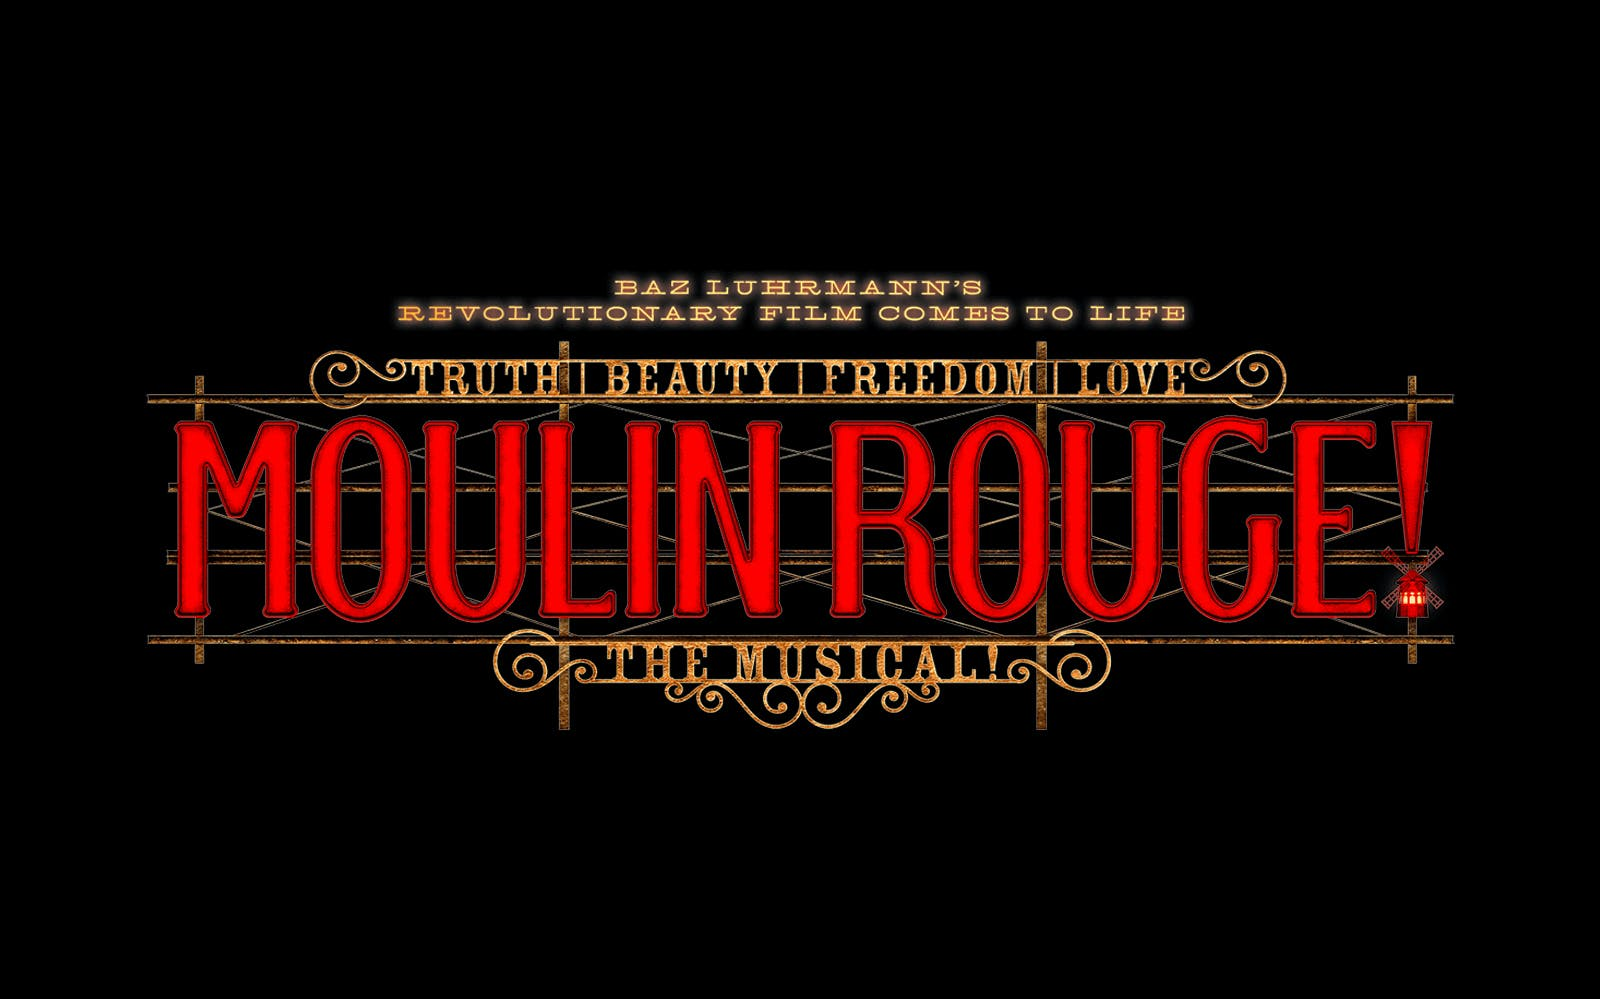 Best Broadway Shows - Moulin Rouge